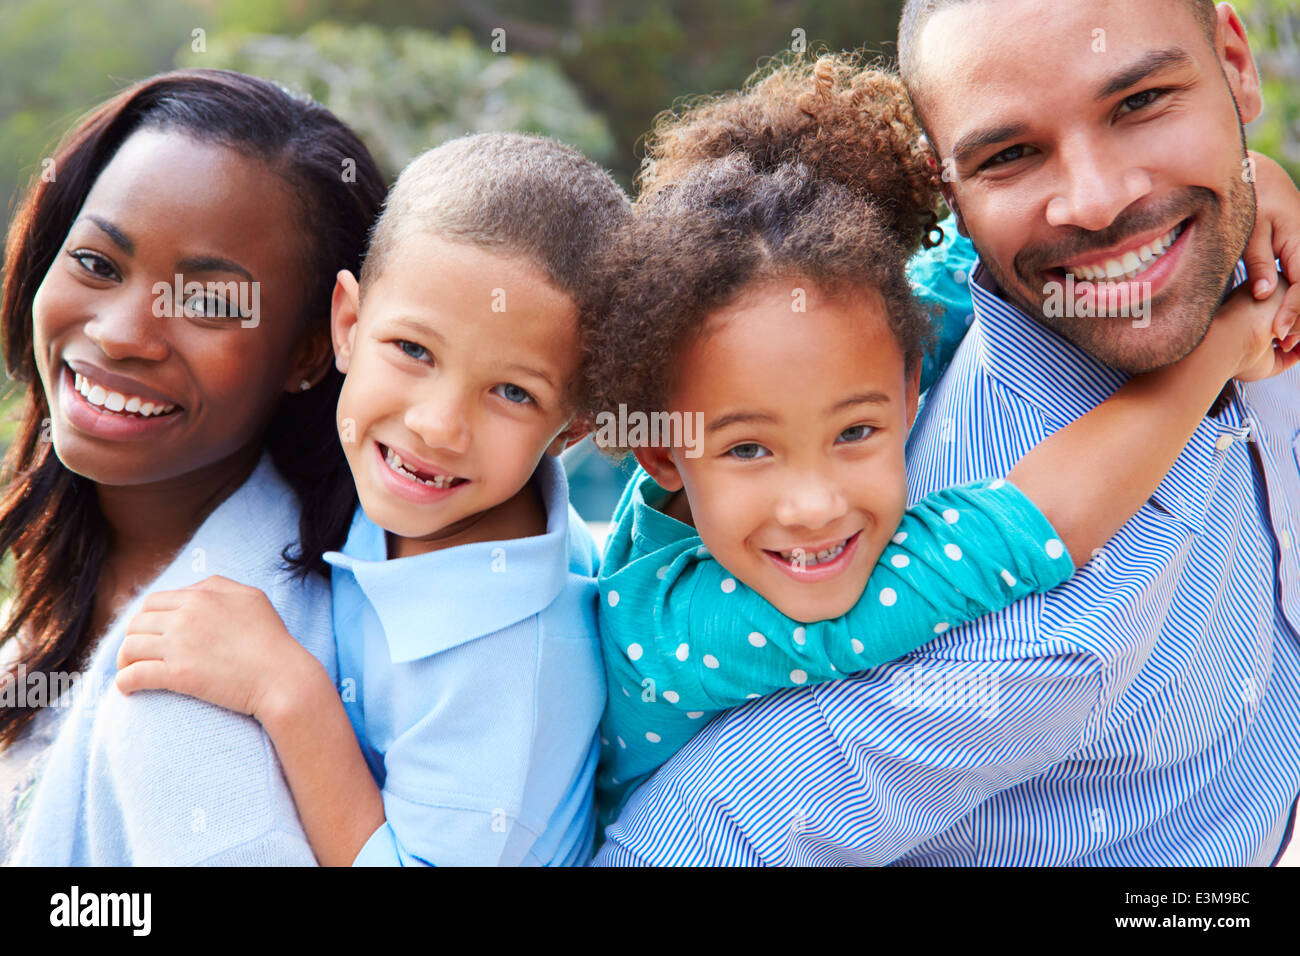 Portrait of African American Family in Countryside Photo Stock